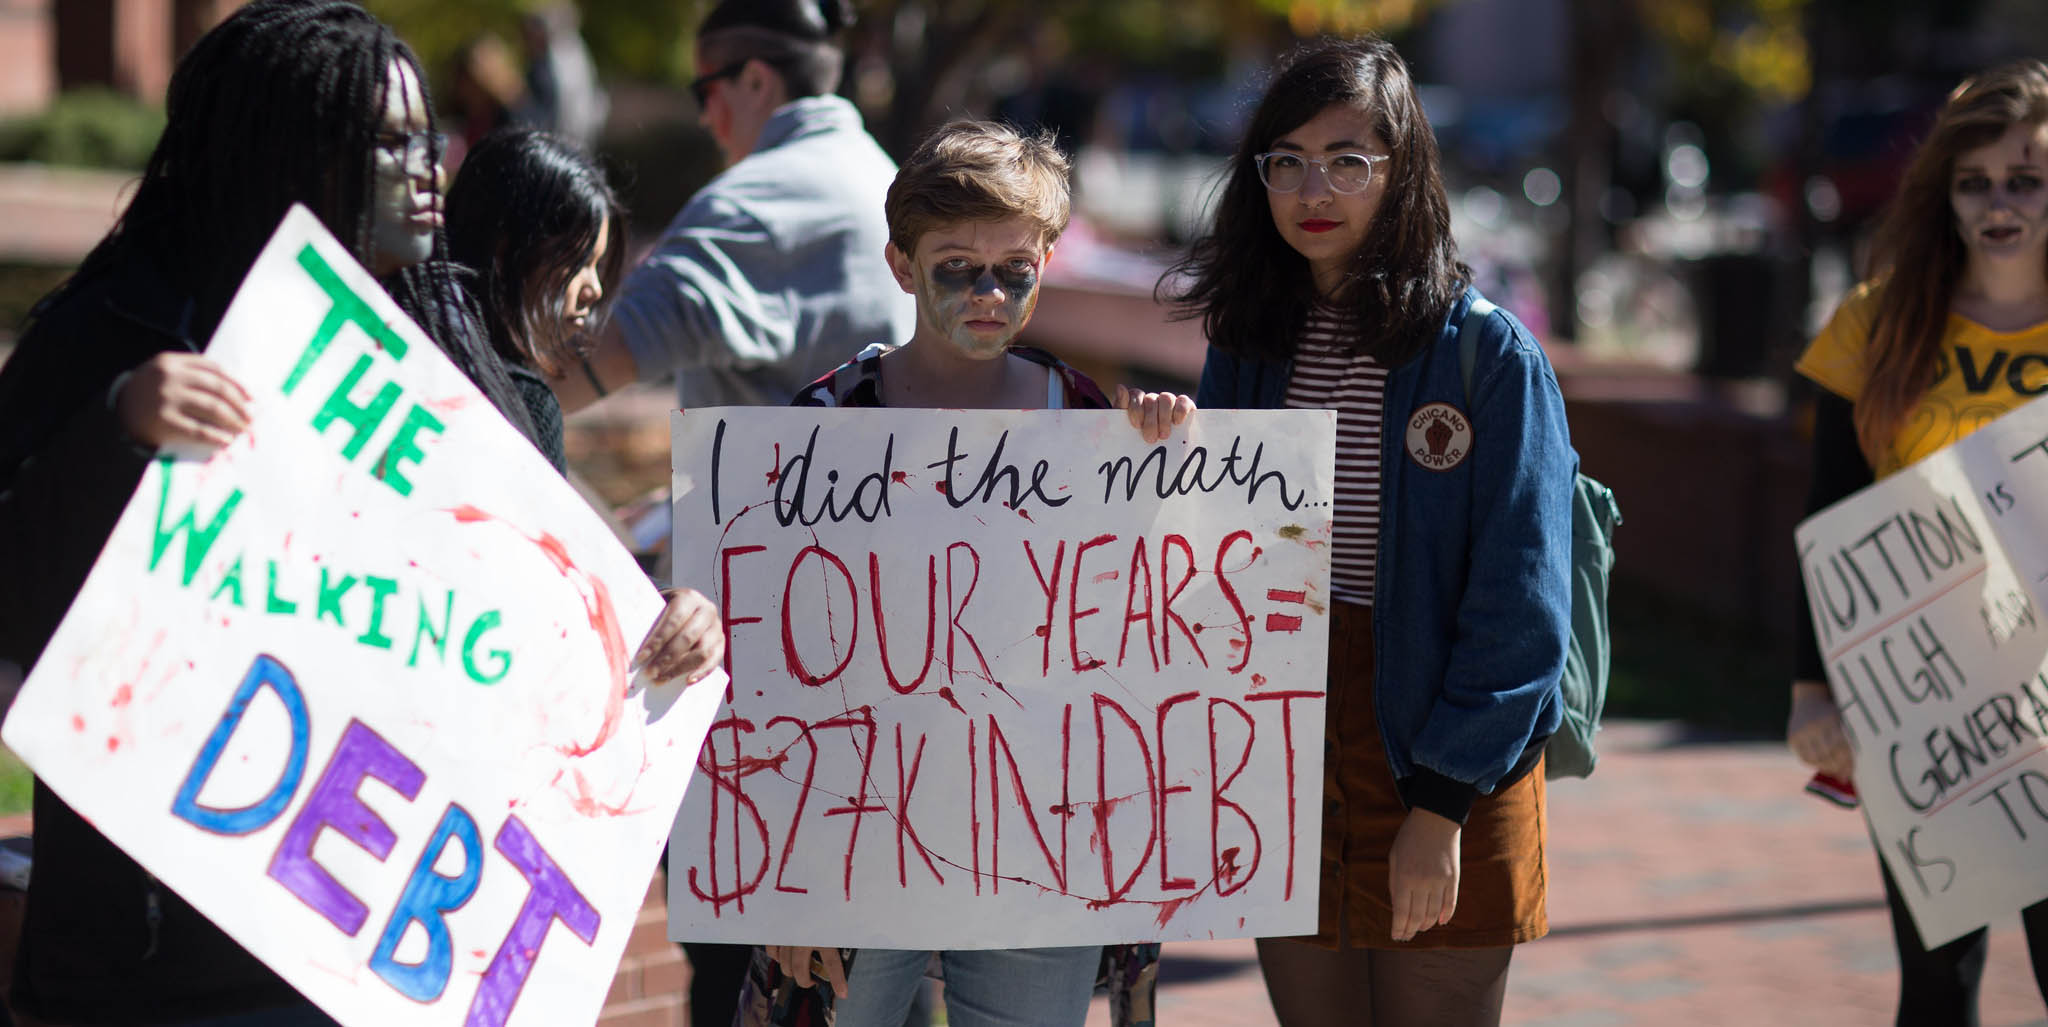 A demonstrator in a student debt protest dressed as The Walking Debt calculates  his college debt. Photo by Tom Woodward/Flickr/cc2.0